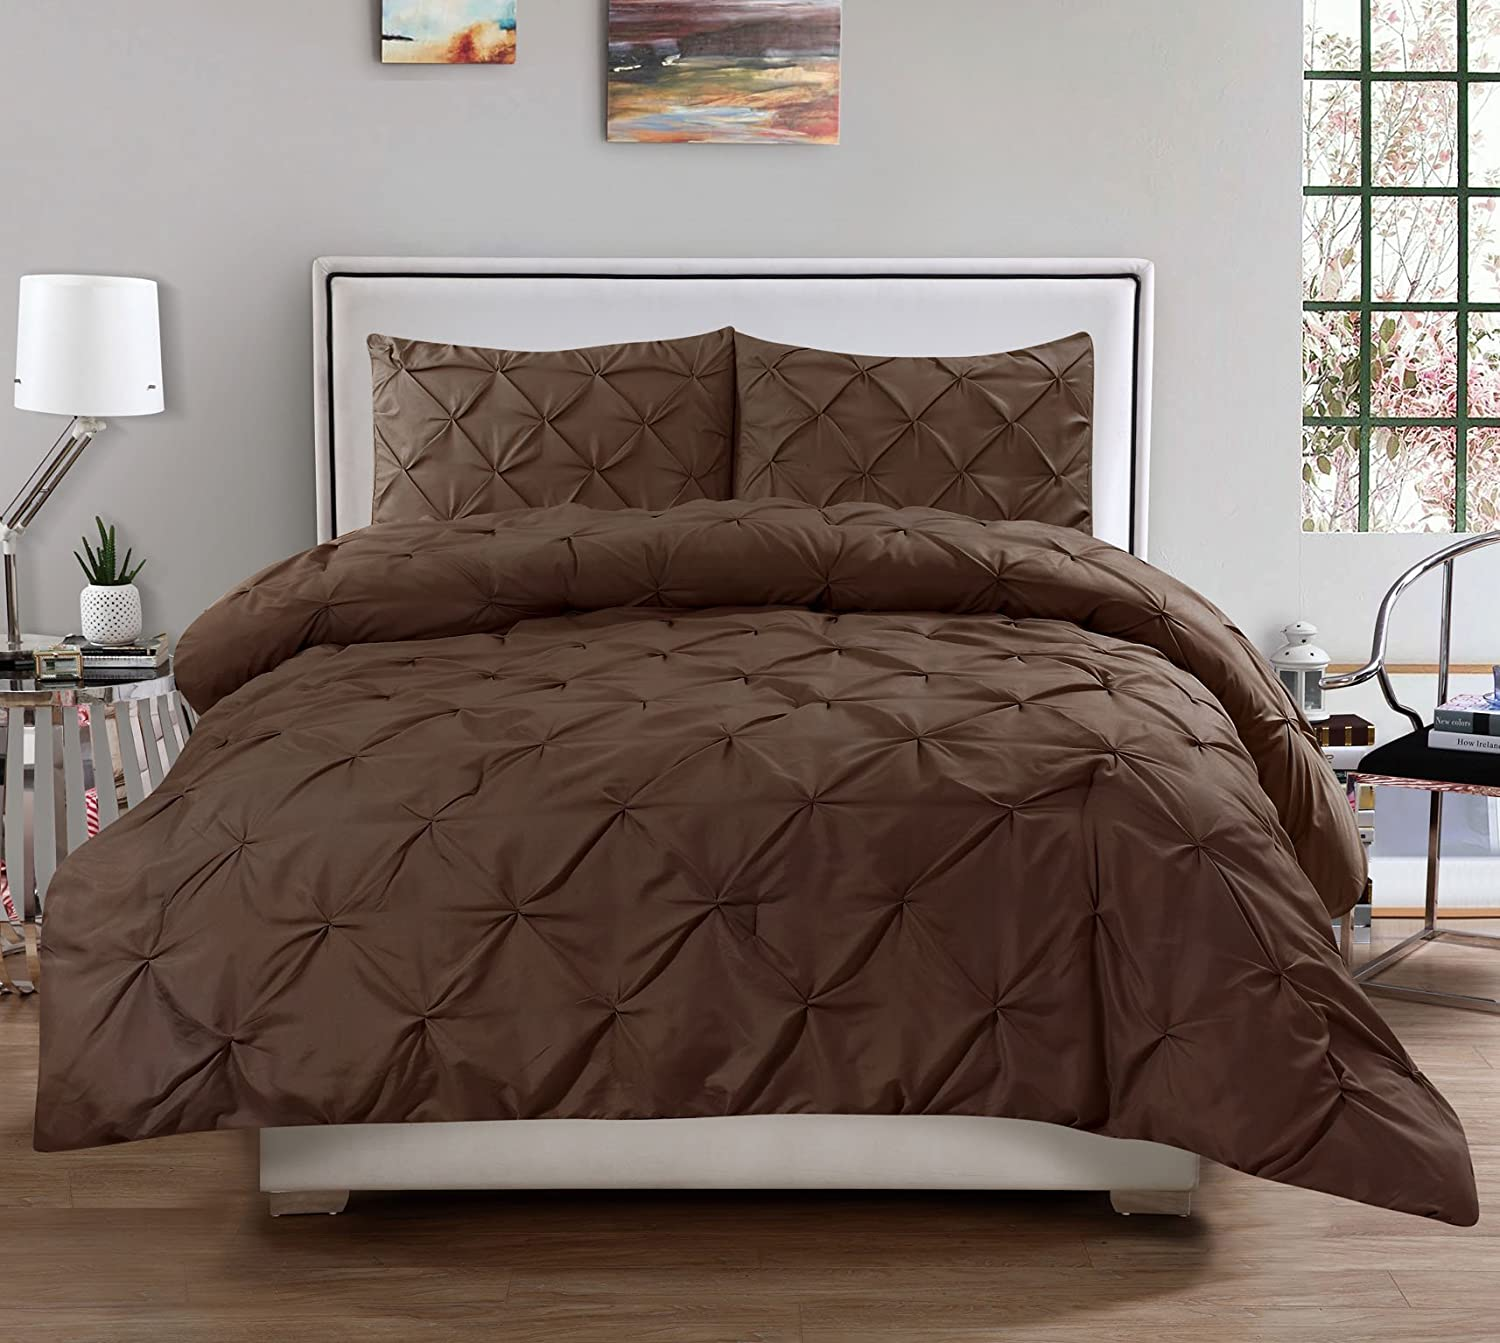 3 Piece Luxurious Pinch Pleat Decorative Pintuck Comforter Set Full/Queen, Chocolate